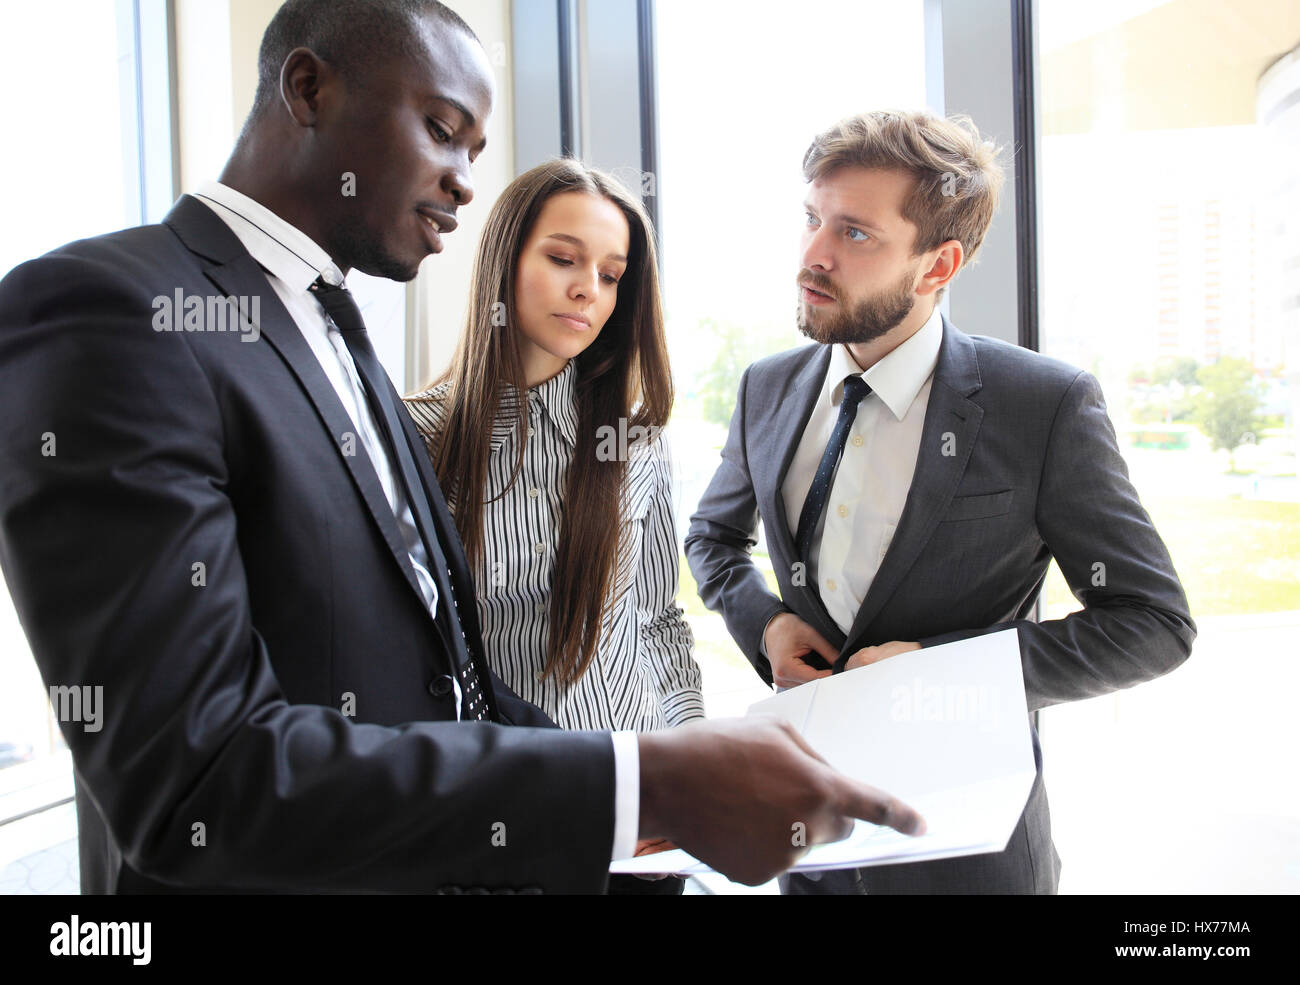 Business People Working Teamwork Cooperation Conference. - Stock Image